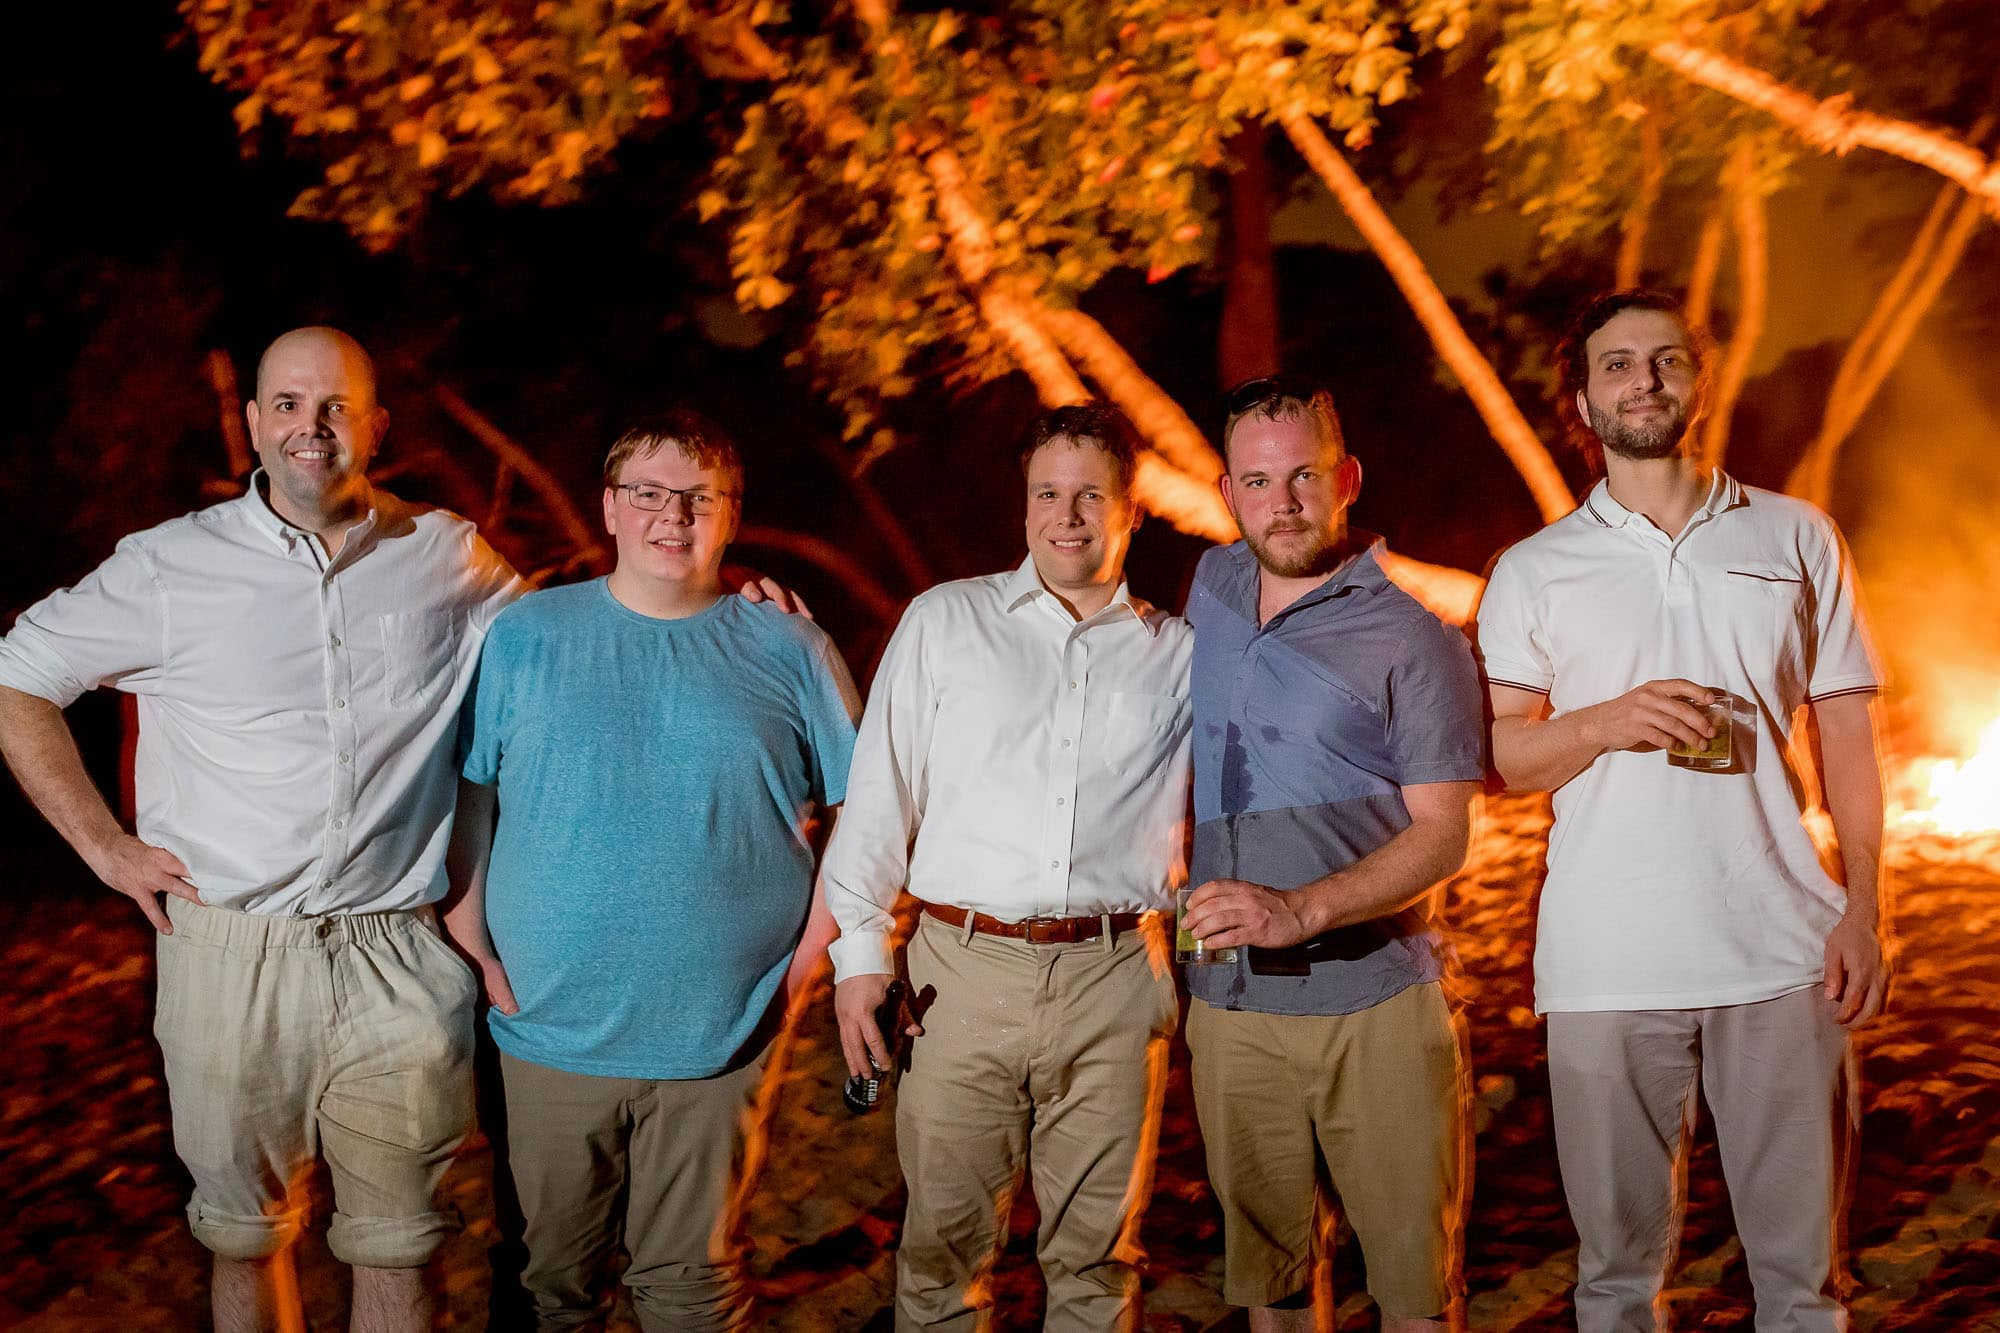 The groom with his buddies in front of the bonfire